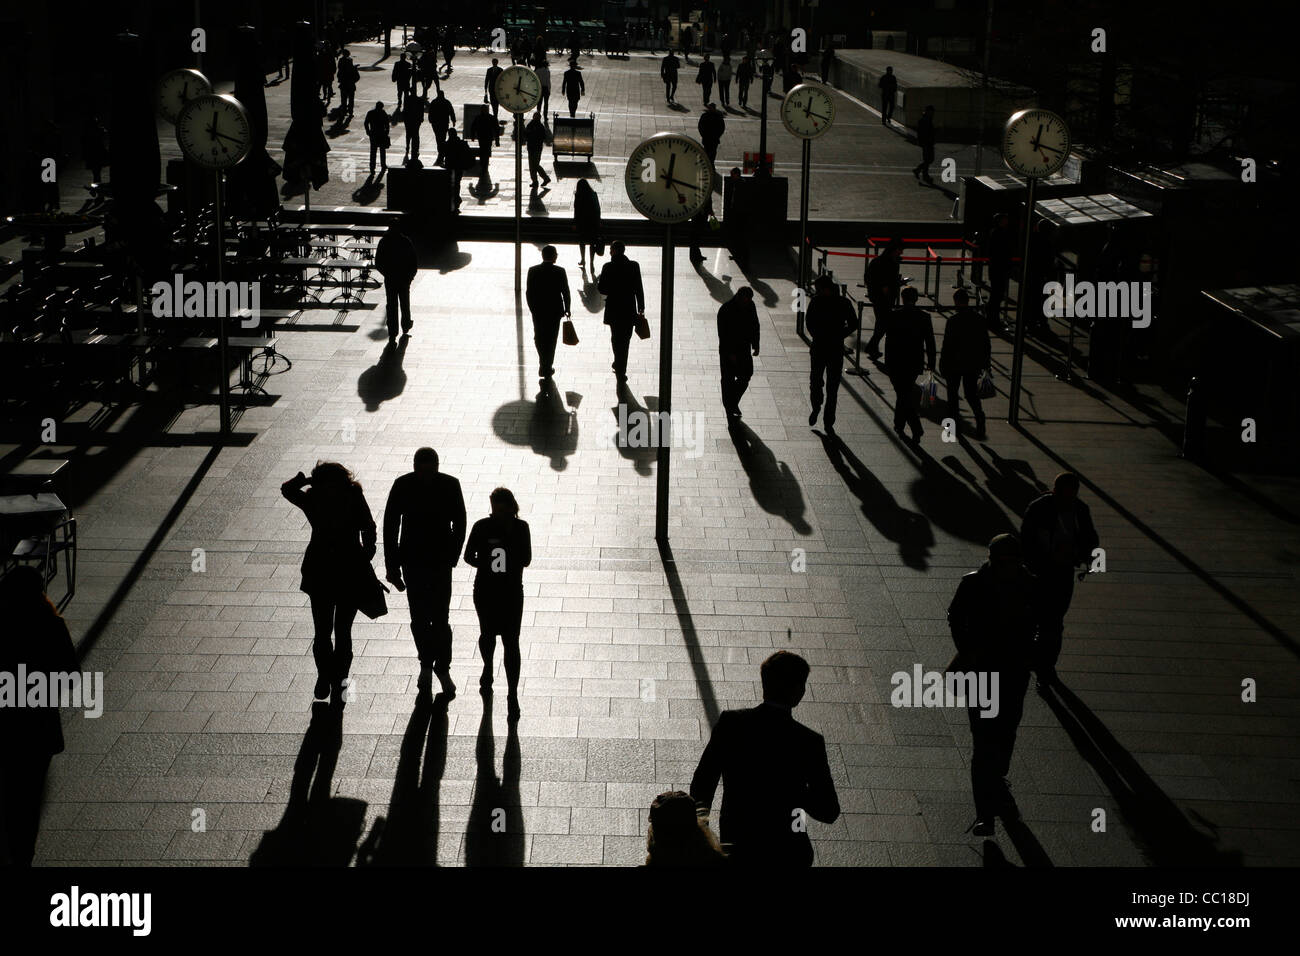 Shadows and silhouettes of pedestrians walking through Reuters Plaza, Canary Wharf, London, UK Stock Photo